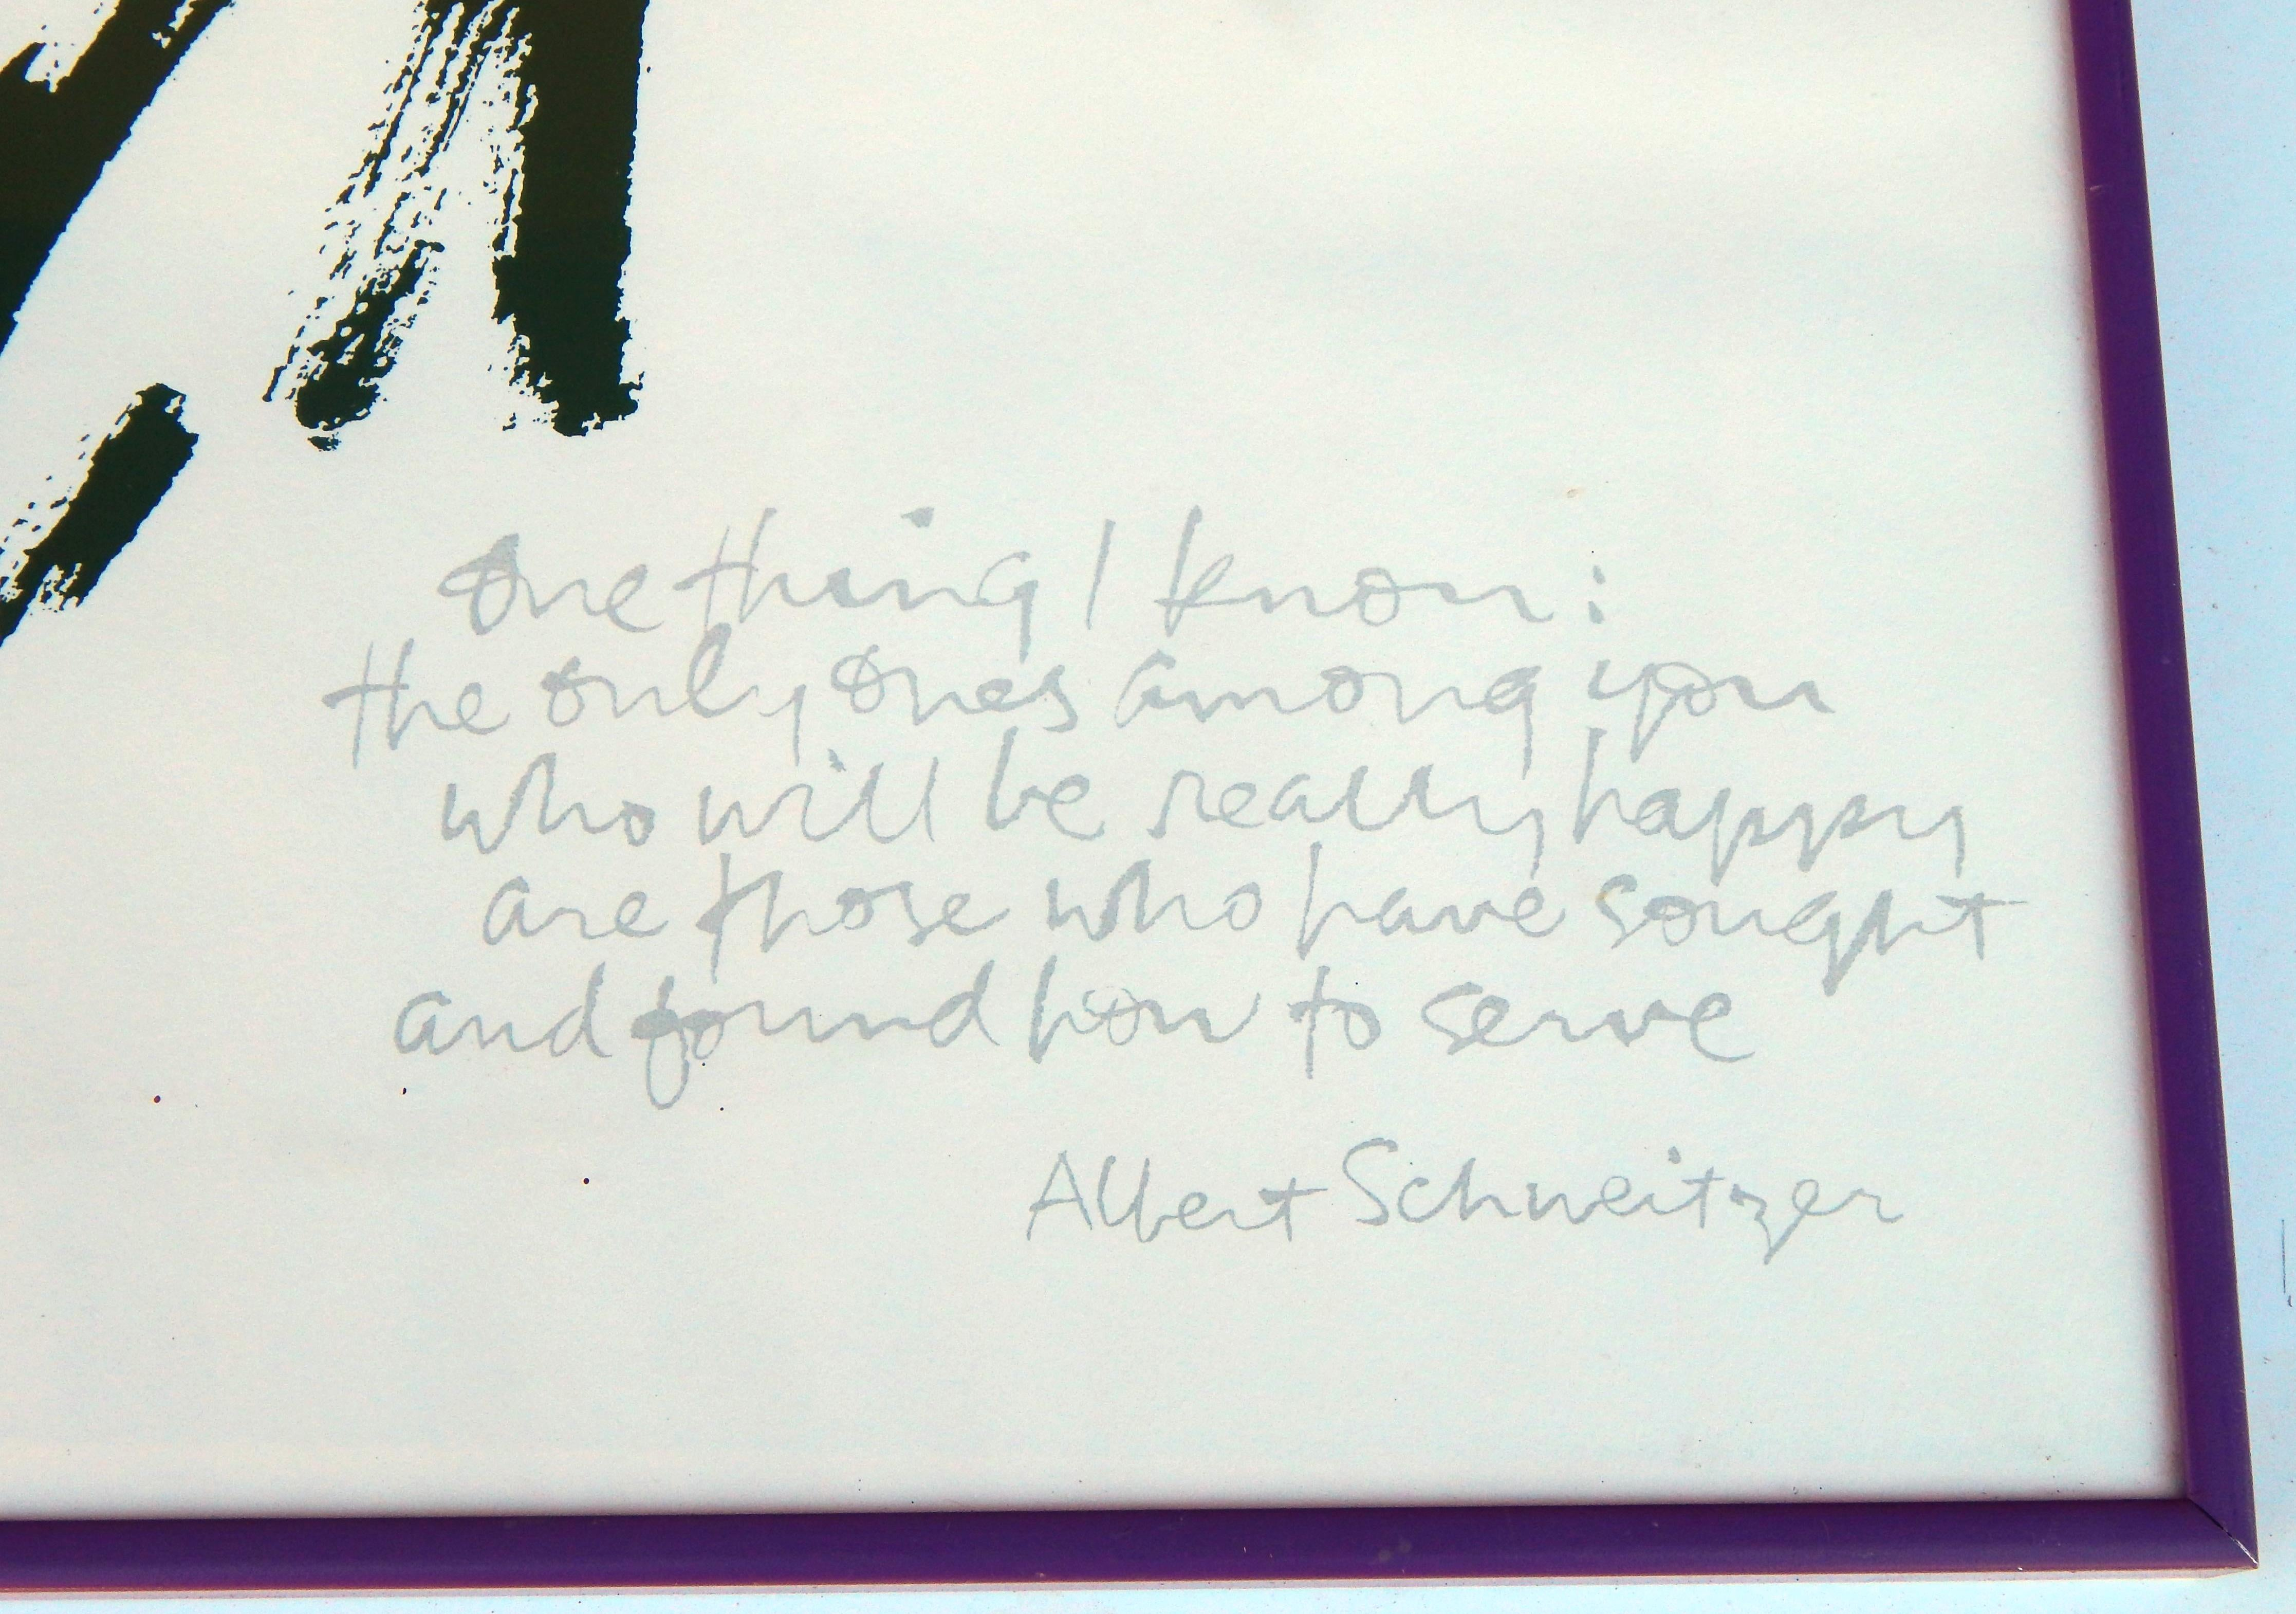 Somat Deco Corita Kent Original Serigraph Signed In Pencil With Quote By Albert Schweitzer